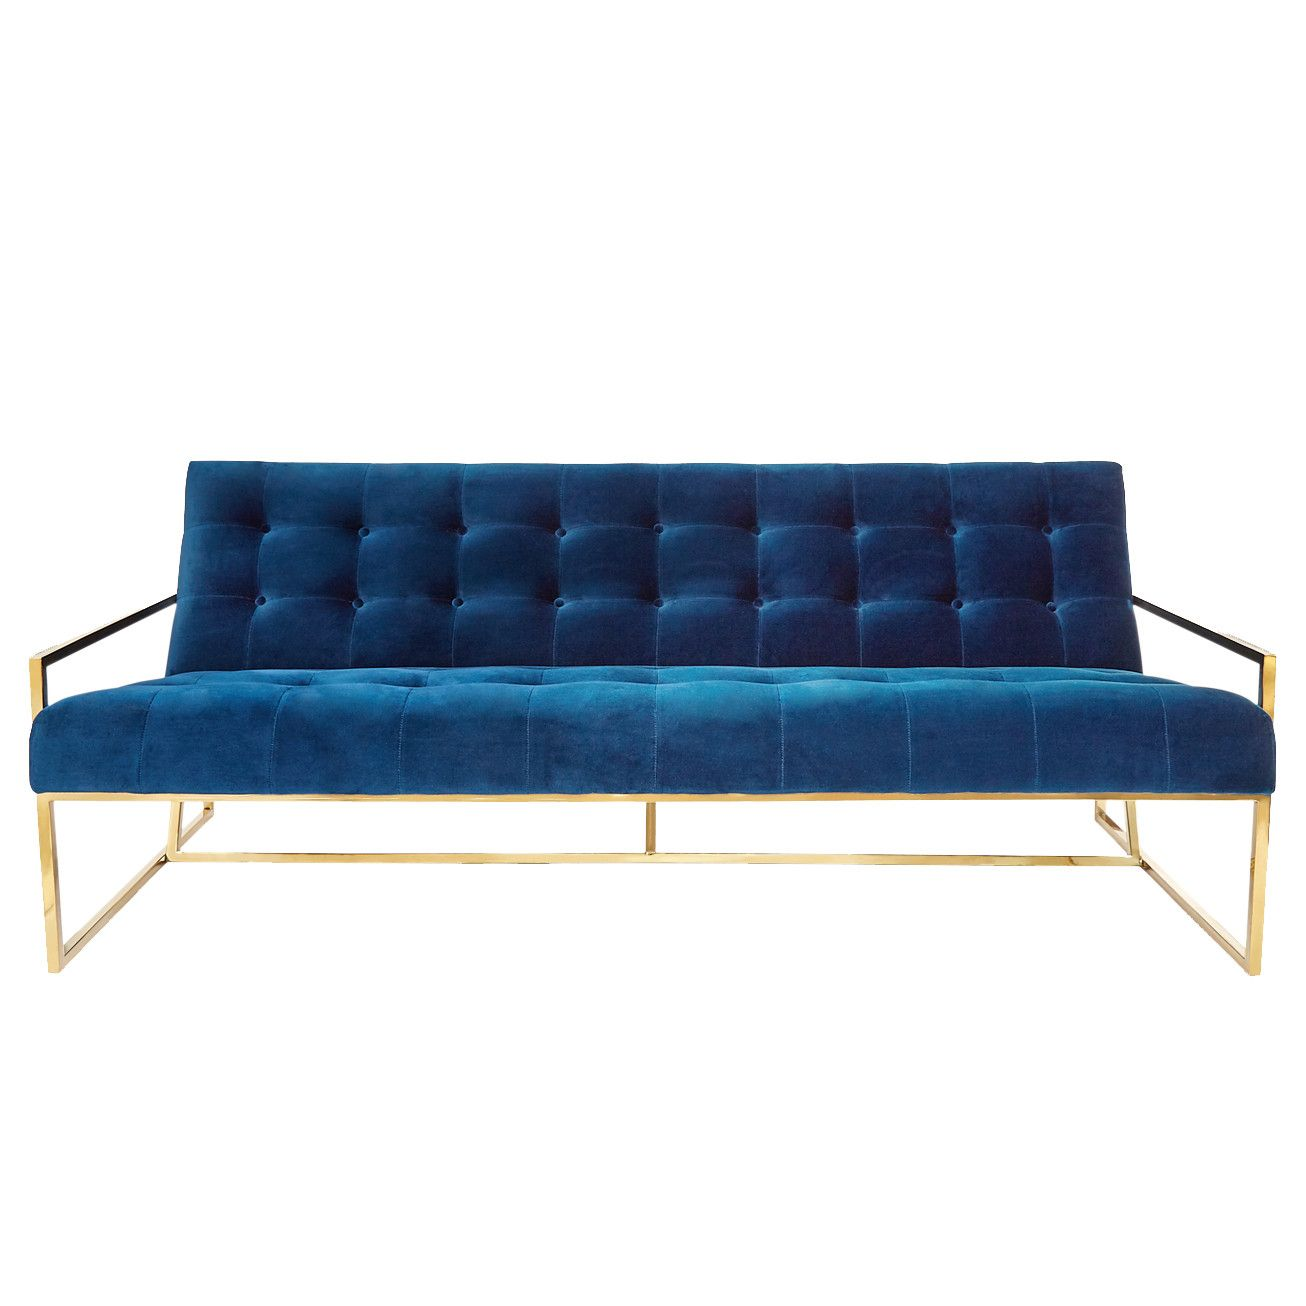 Broyhill Sofa By Jonathan Adler Pared down geometry in polished brass meets swanky navy velvet in our